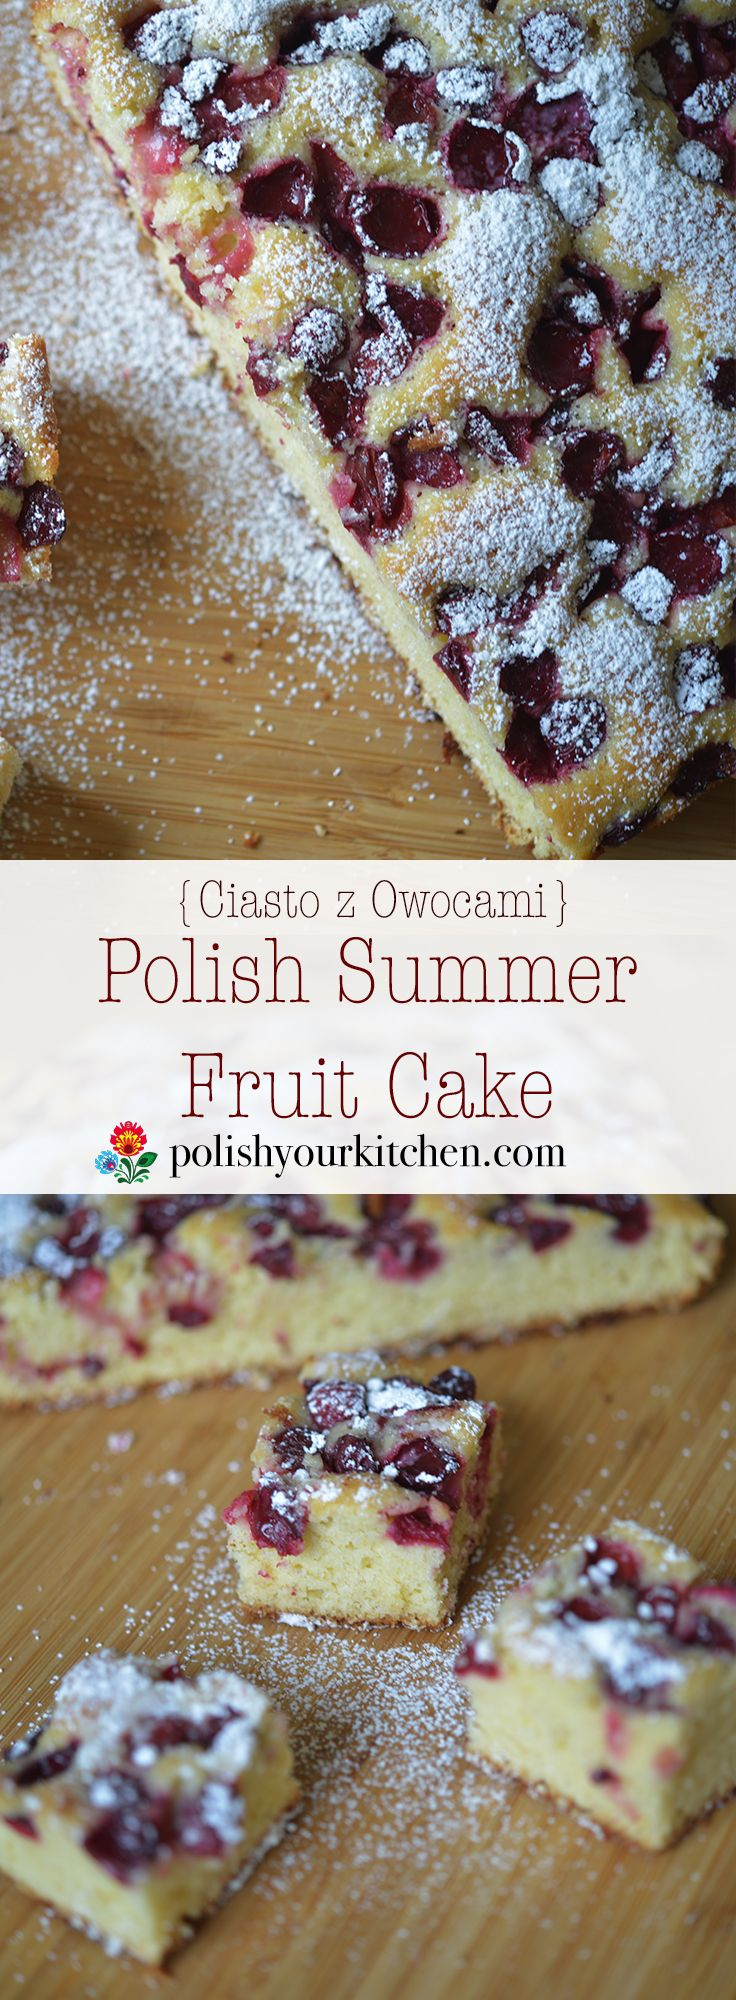 Simple Polish Summer Fruit Cake, buttery and light, with any fruit that are in your garden or market. Recipe at polishyourkitchen.com